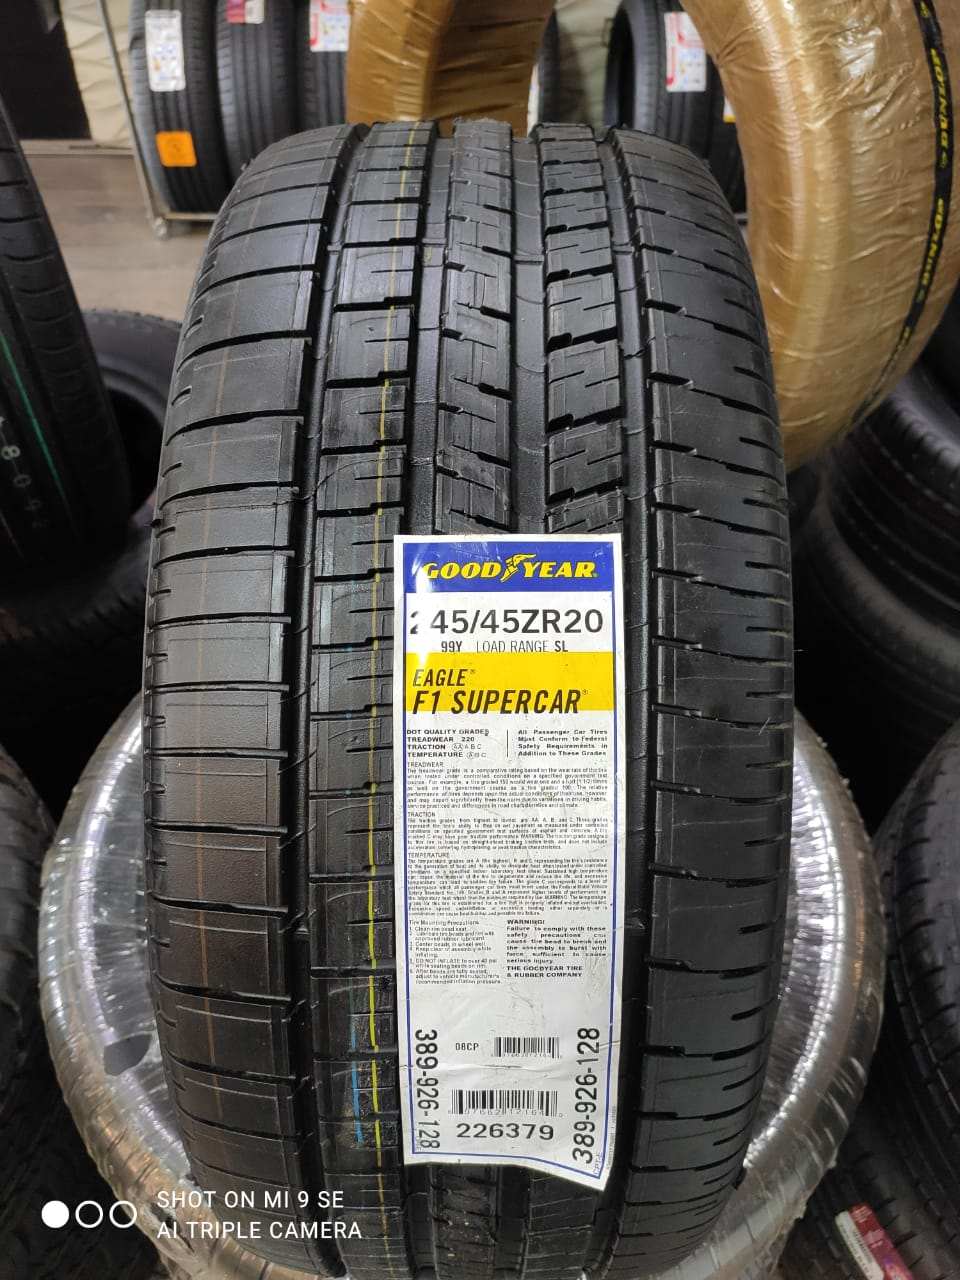 Good Year Eagle F1 SuperCar 245/45R20